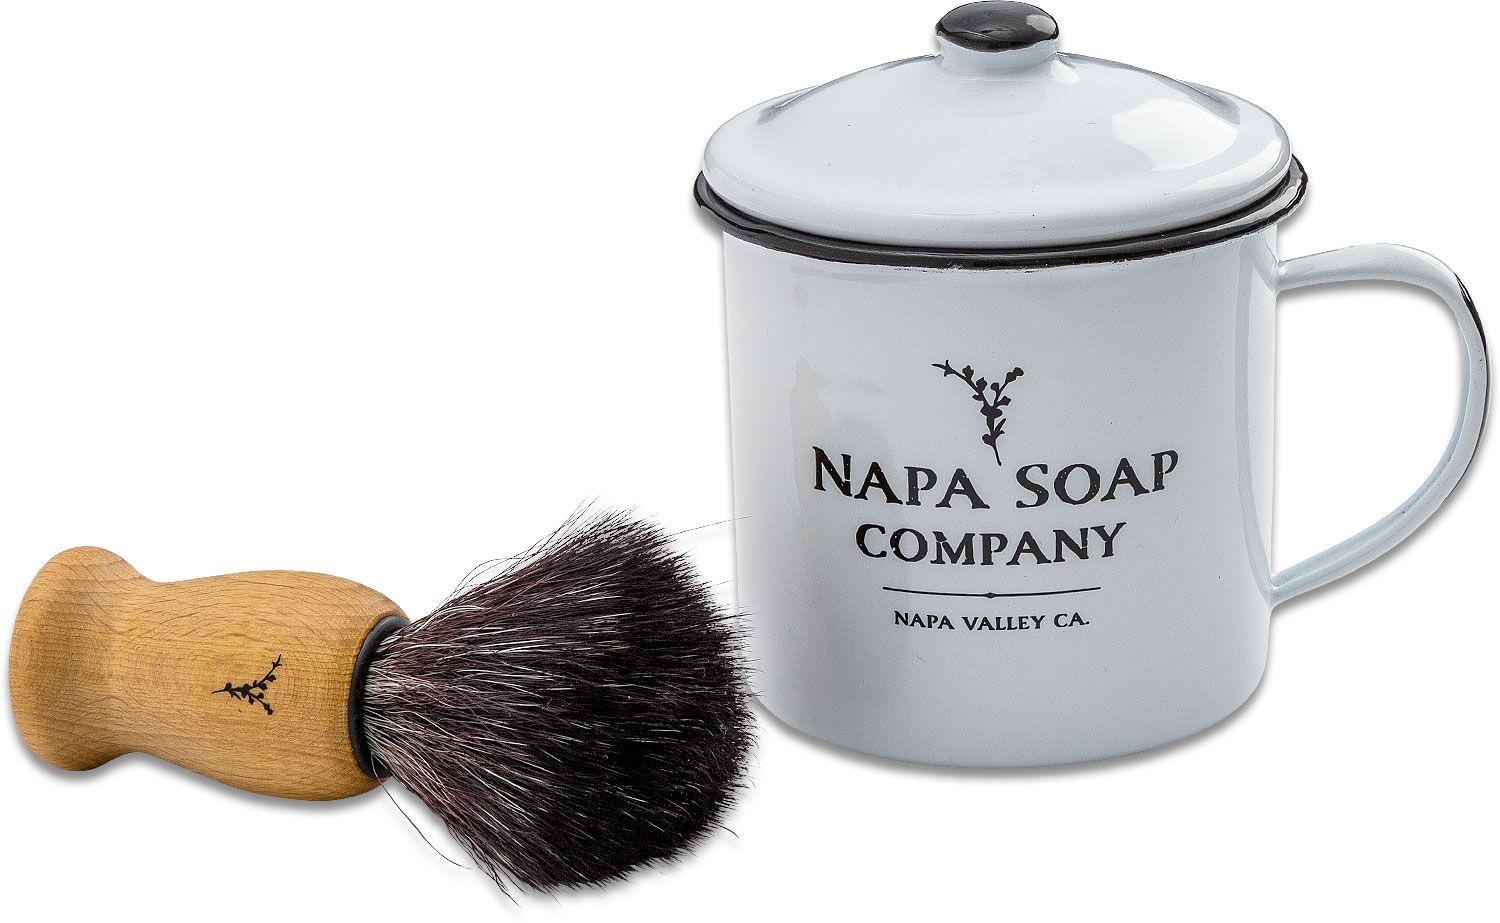 Napa Soap Company Enamel Shaving Soap Gift Set, Ocean Blend